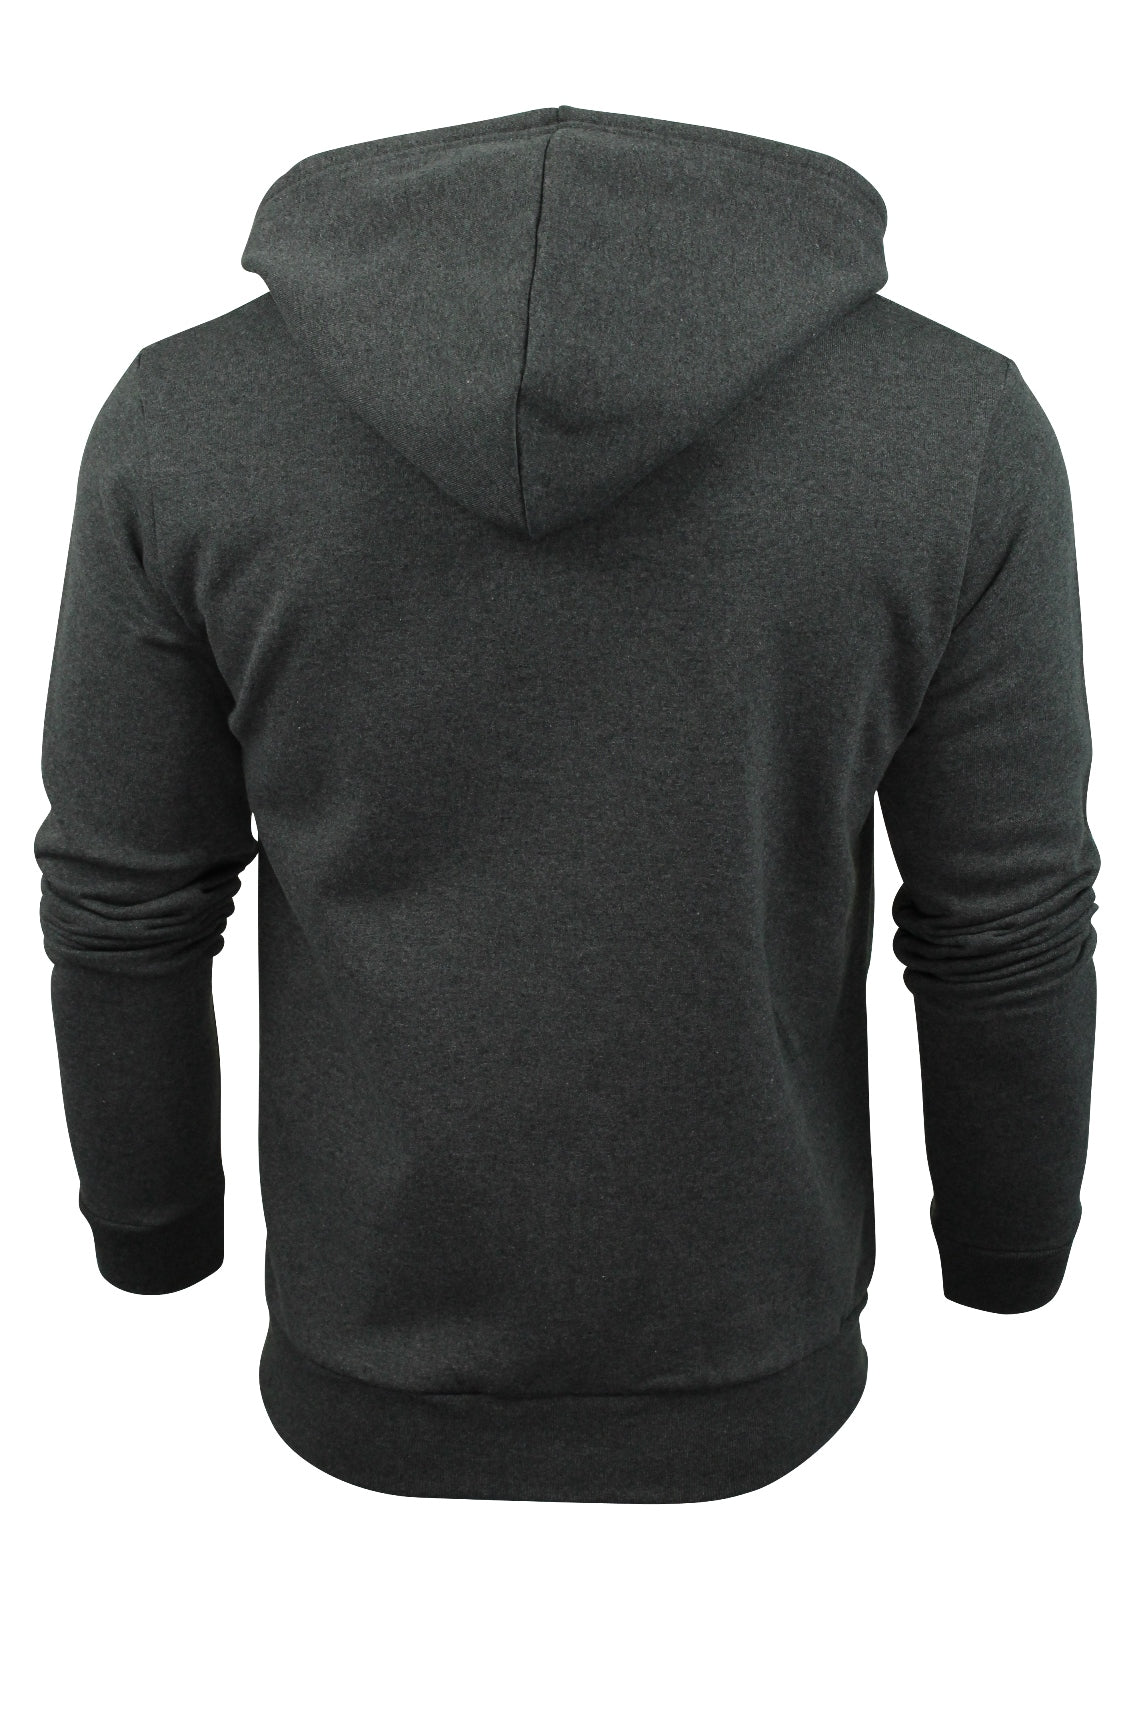 Mens Hoodie Sweat-Top by Xact Clothing Made in England-3